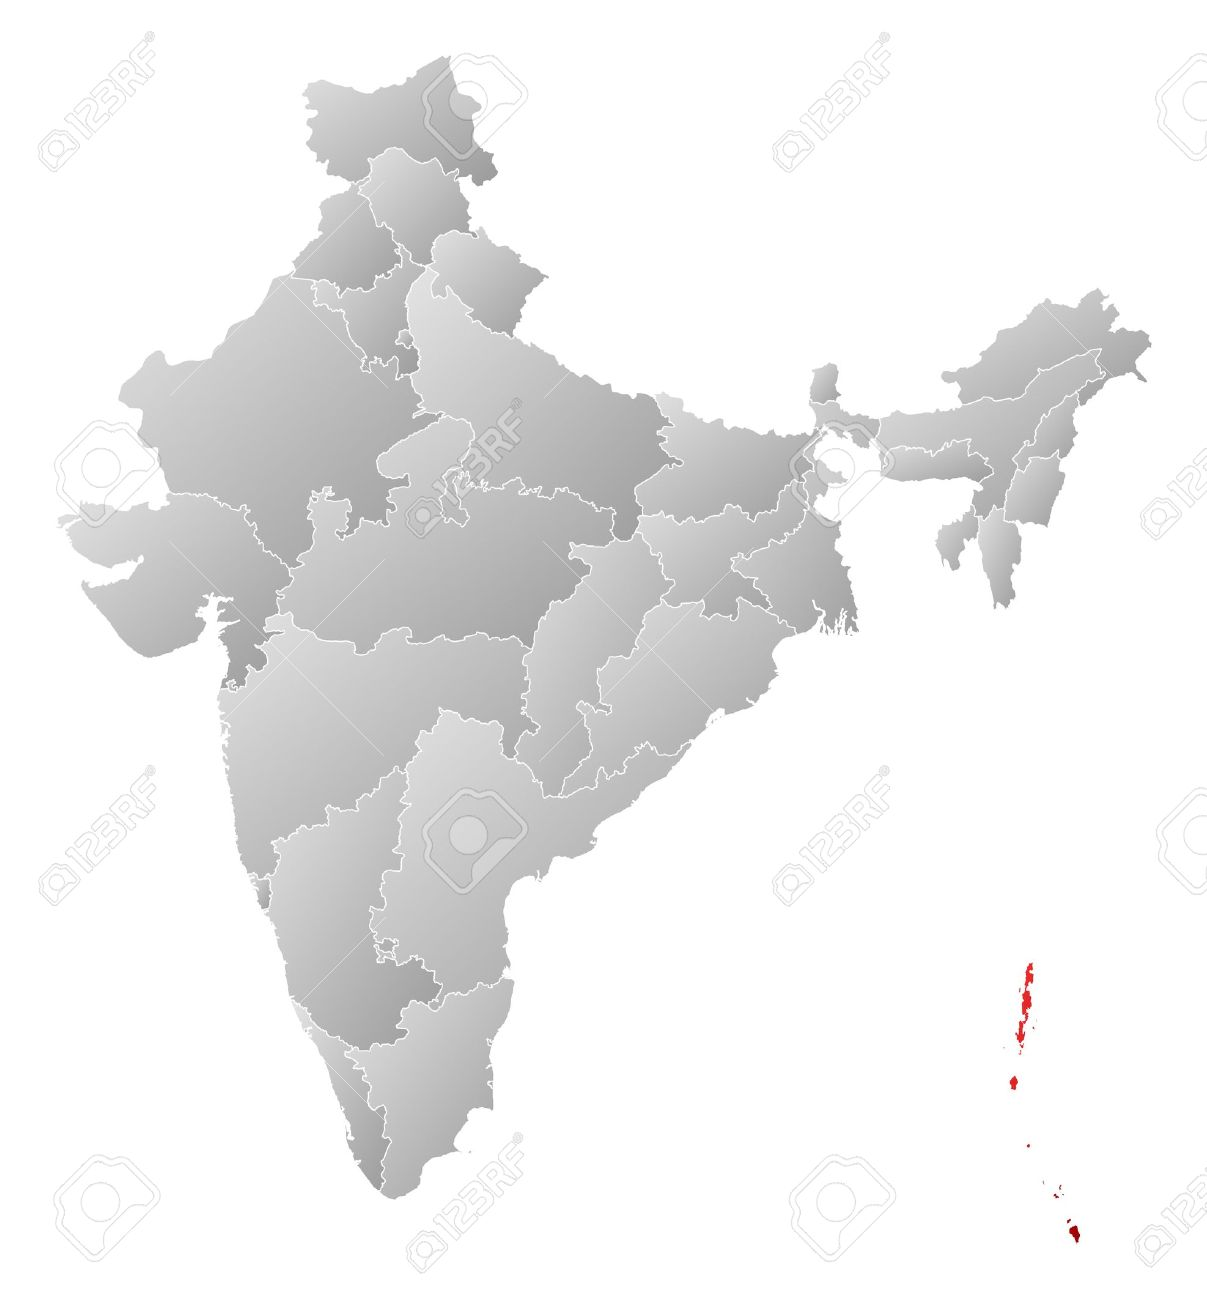 Political map of India with the several states where Andaman.. on political map kerala, atlas of india, geography of india, political map government, political world map, map showing india, major rivers of india, north india, varanasi india, northern region of india, nashik india, maps of only india, maps for india, world map india, jharkhand india, provinces of india, leader of india, states of india, bangalore india, where's india,